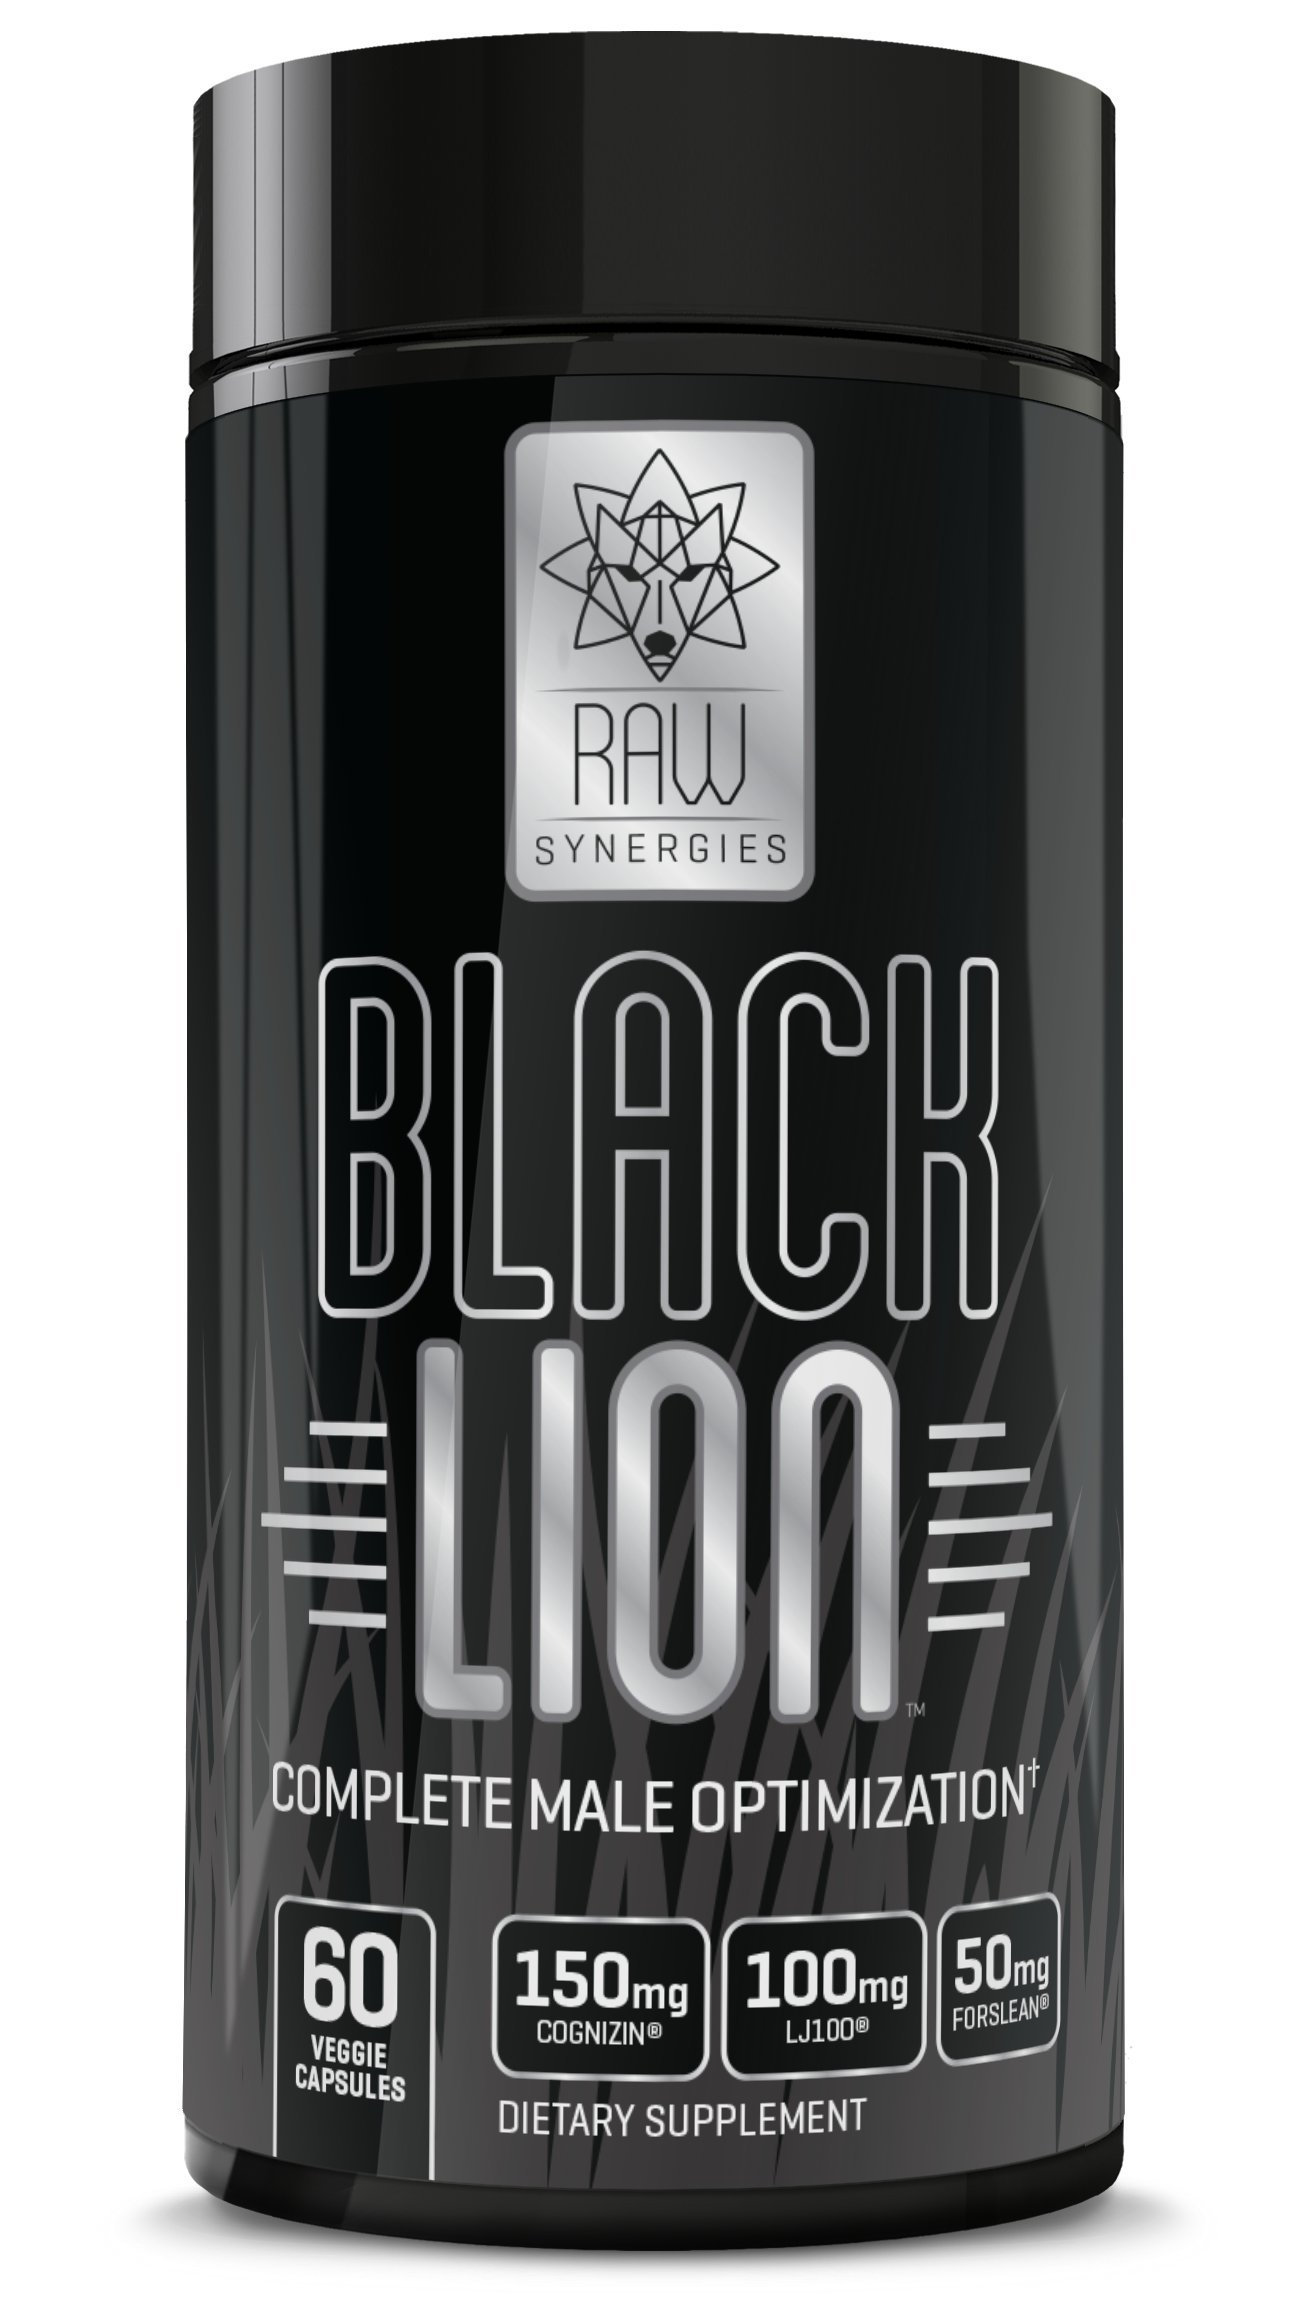 RAW Synergies Black Lion – Thermogenic Test Booster and Fat Burner for Men, Natural Brain Supplement and Estrogen Blocker with DIM and Pure Forskolin for Weight Loss and Muscle Building, 60 sv